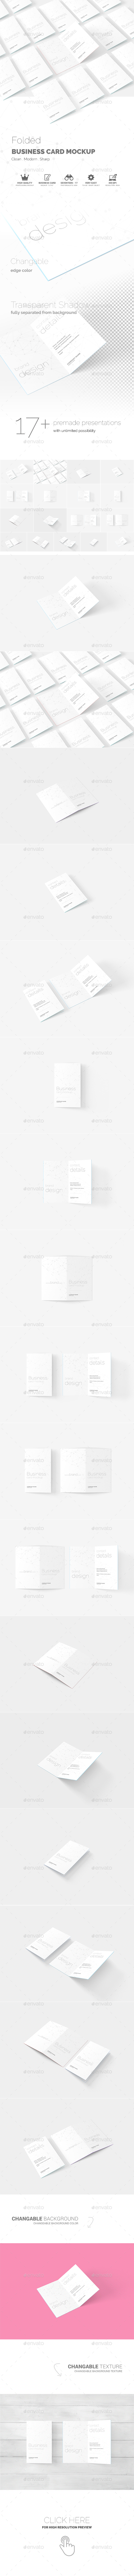 Folded Business Card Mockup — Photoshop PSD #mockup #fold card ...